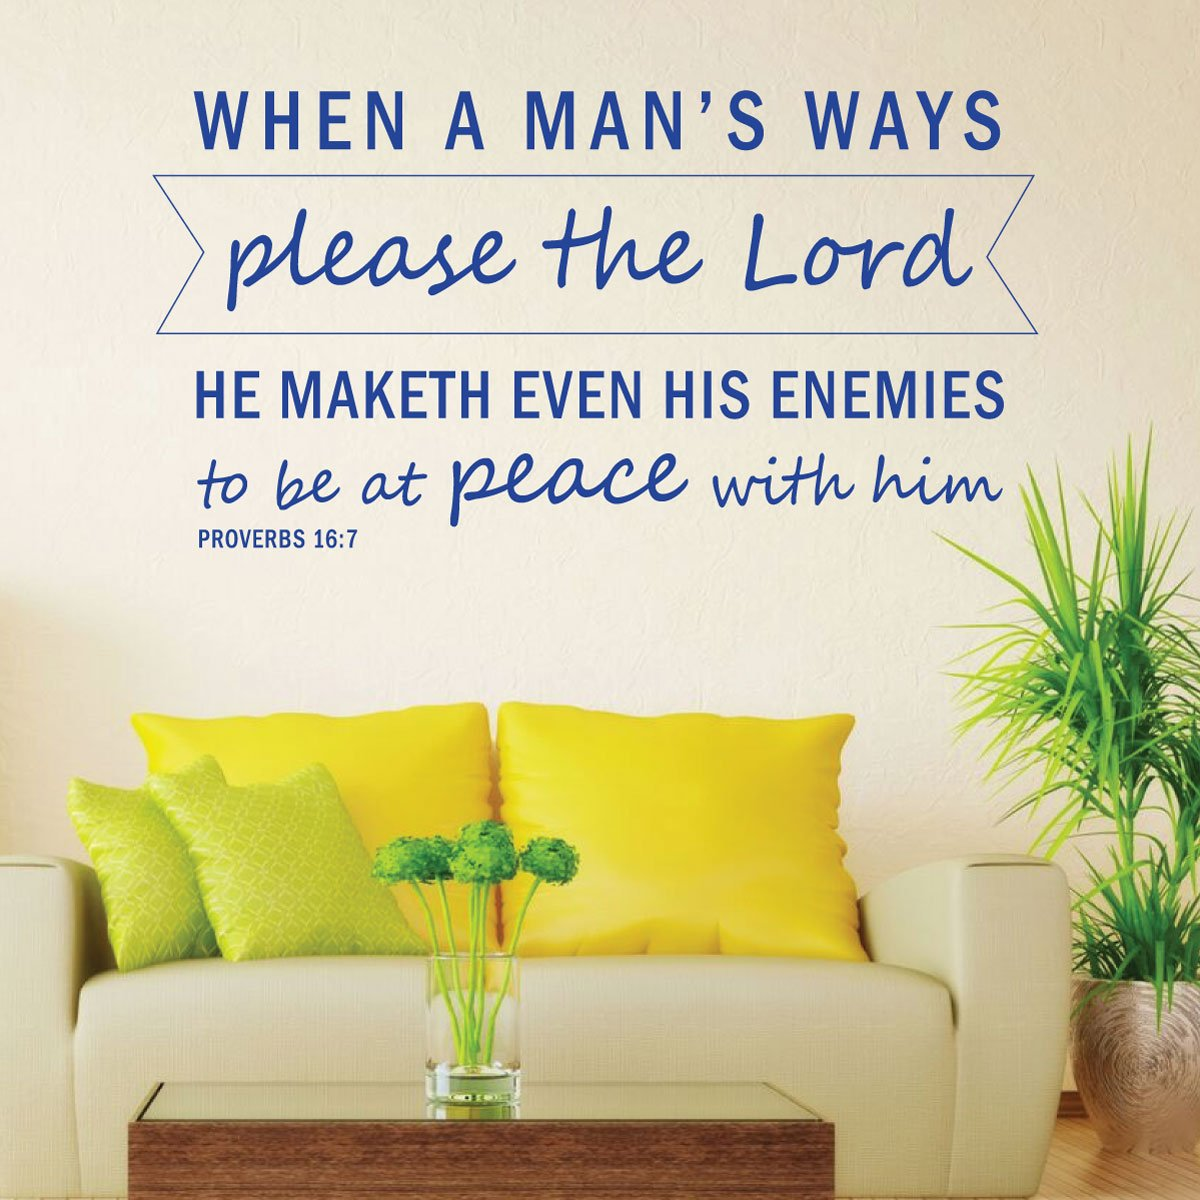 Amazon.com: Bible Verse Wall Art - Proverbs 16:7 Wall Decal - When a ...